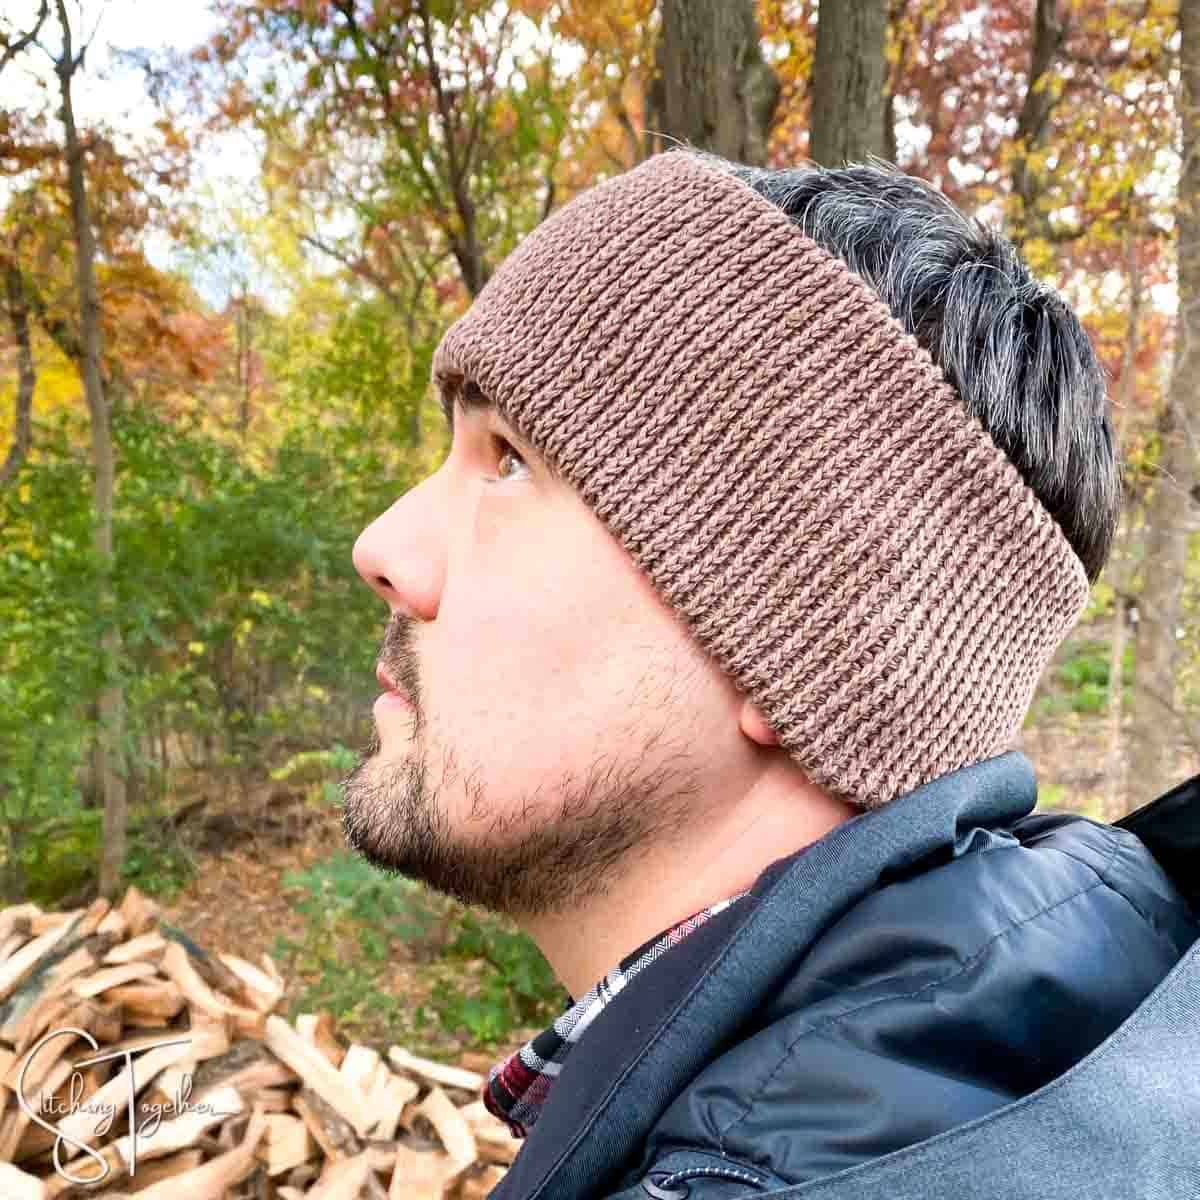 man wearing a brown crochet ear warmer and black jacket